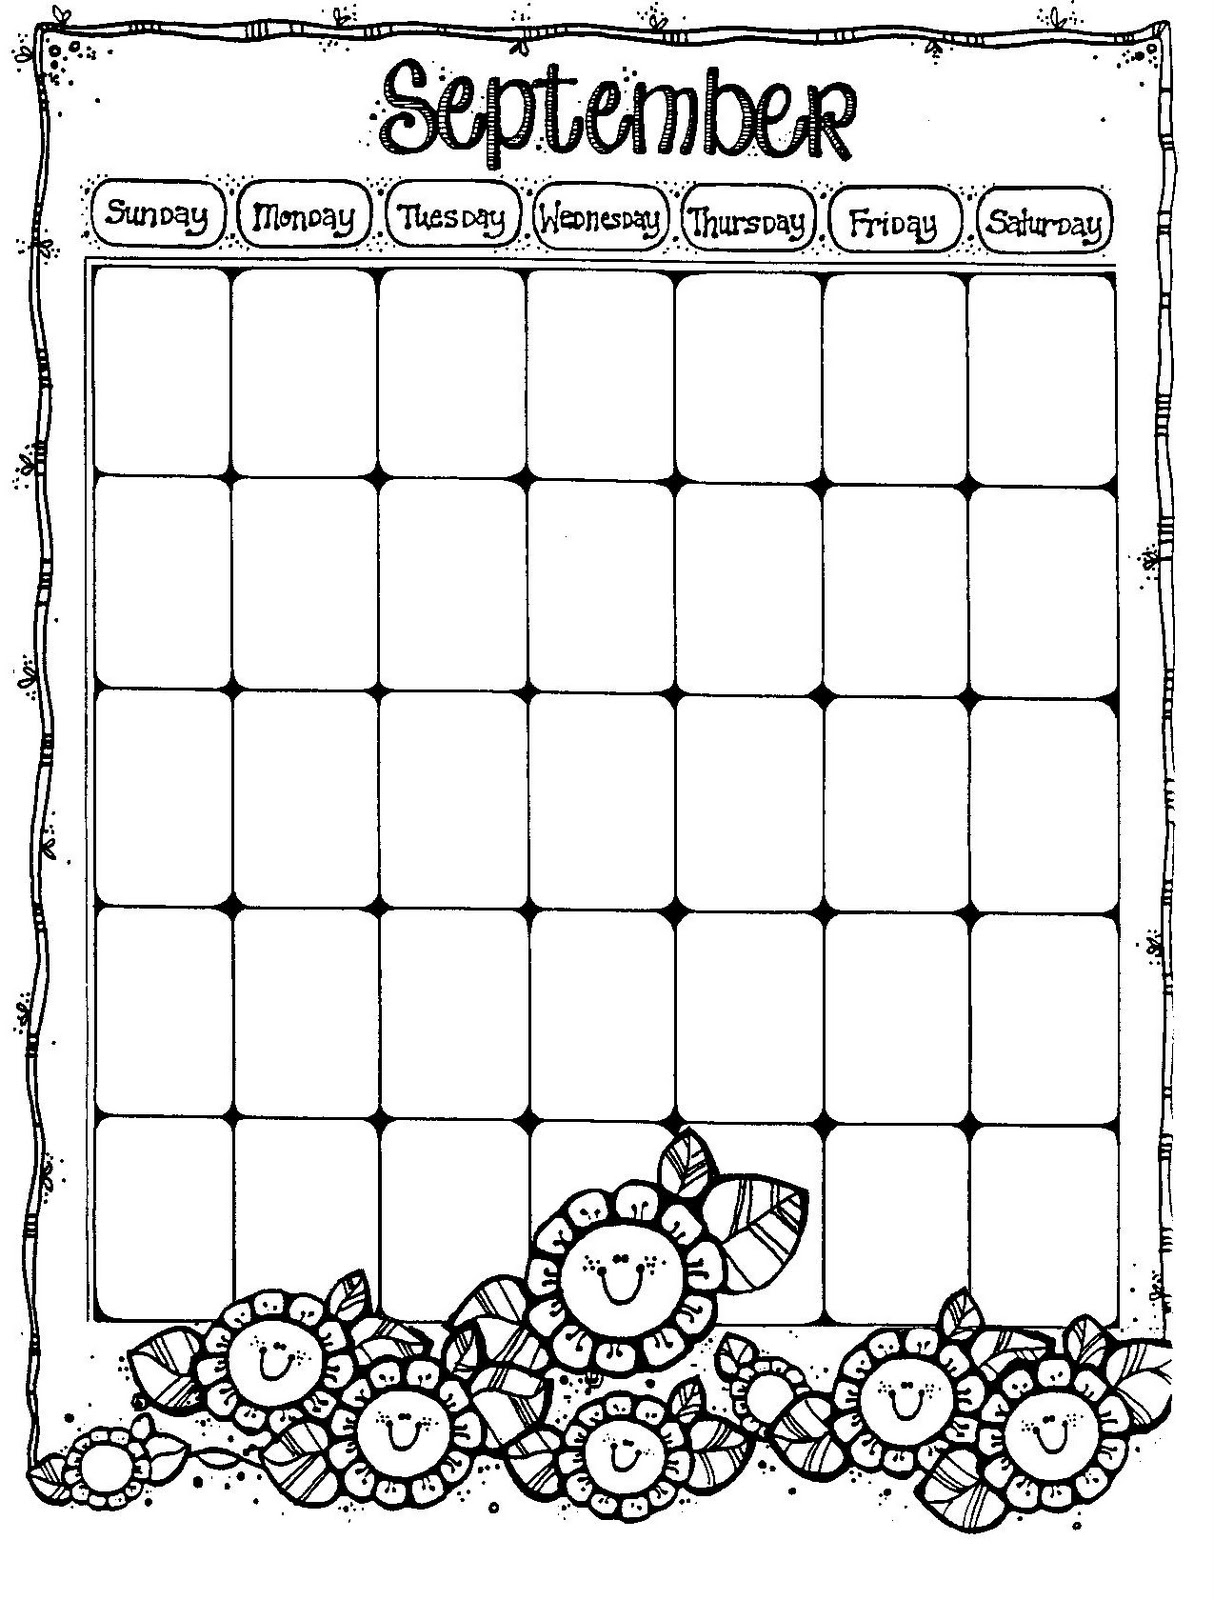 connie u0026 39 s file cabinet  monthly blank calendar pages for a year